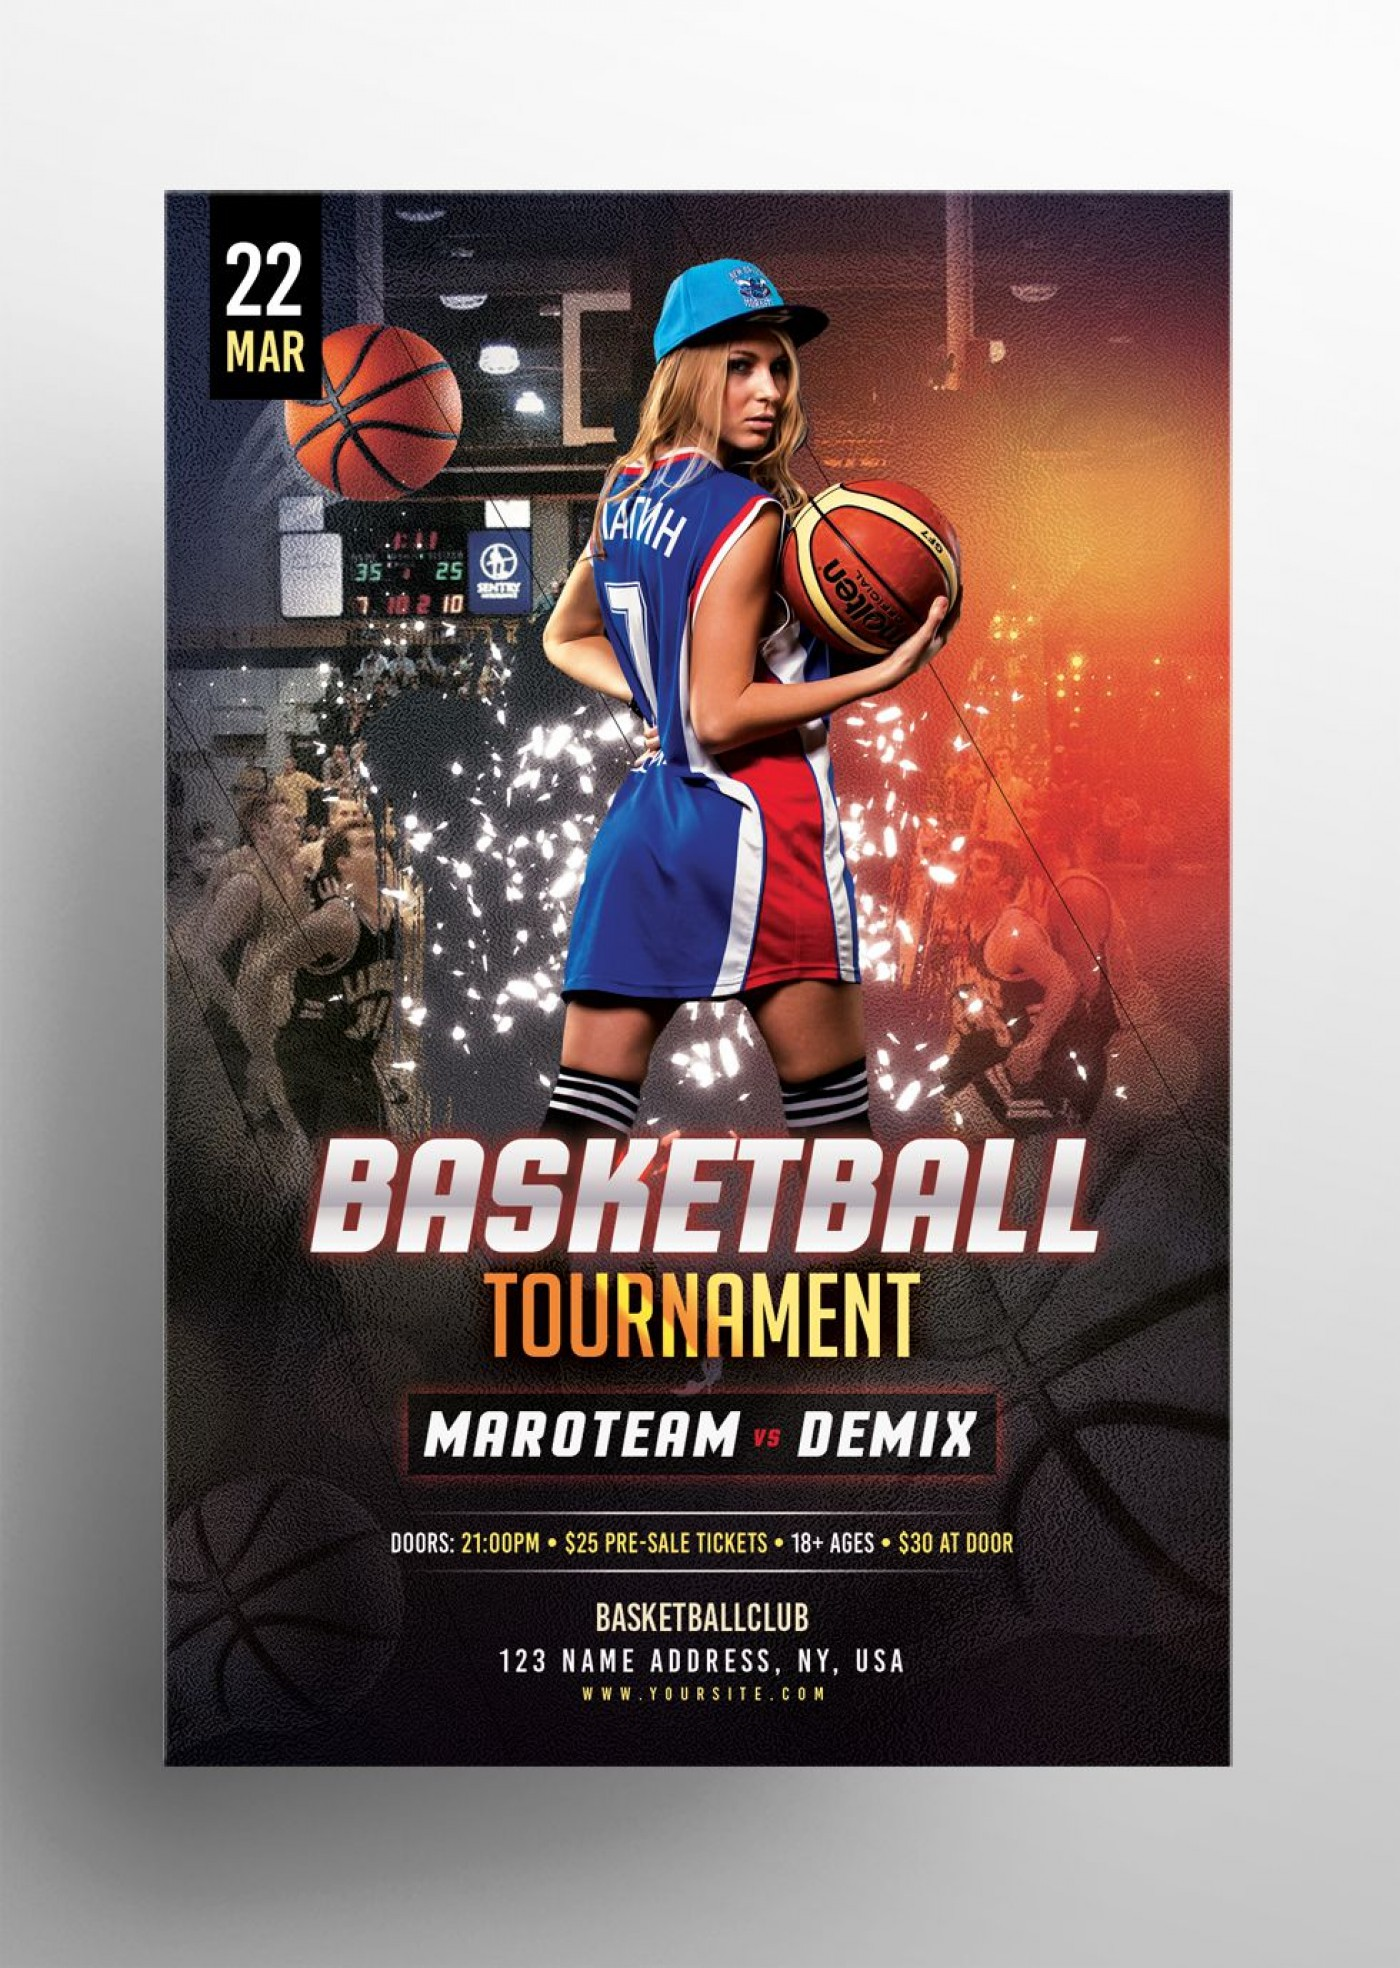 006 Top Basketball Tournament Flyer Template Photo  3 On Free1400